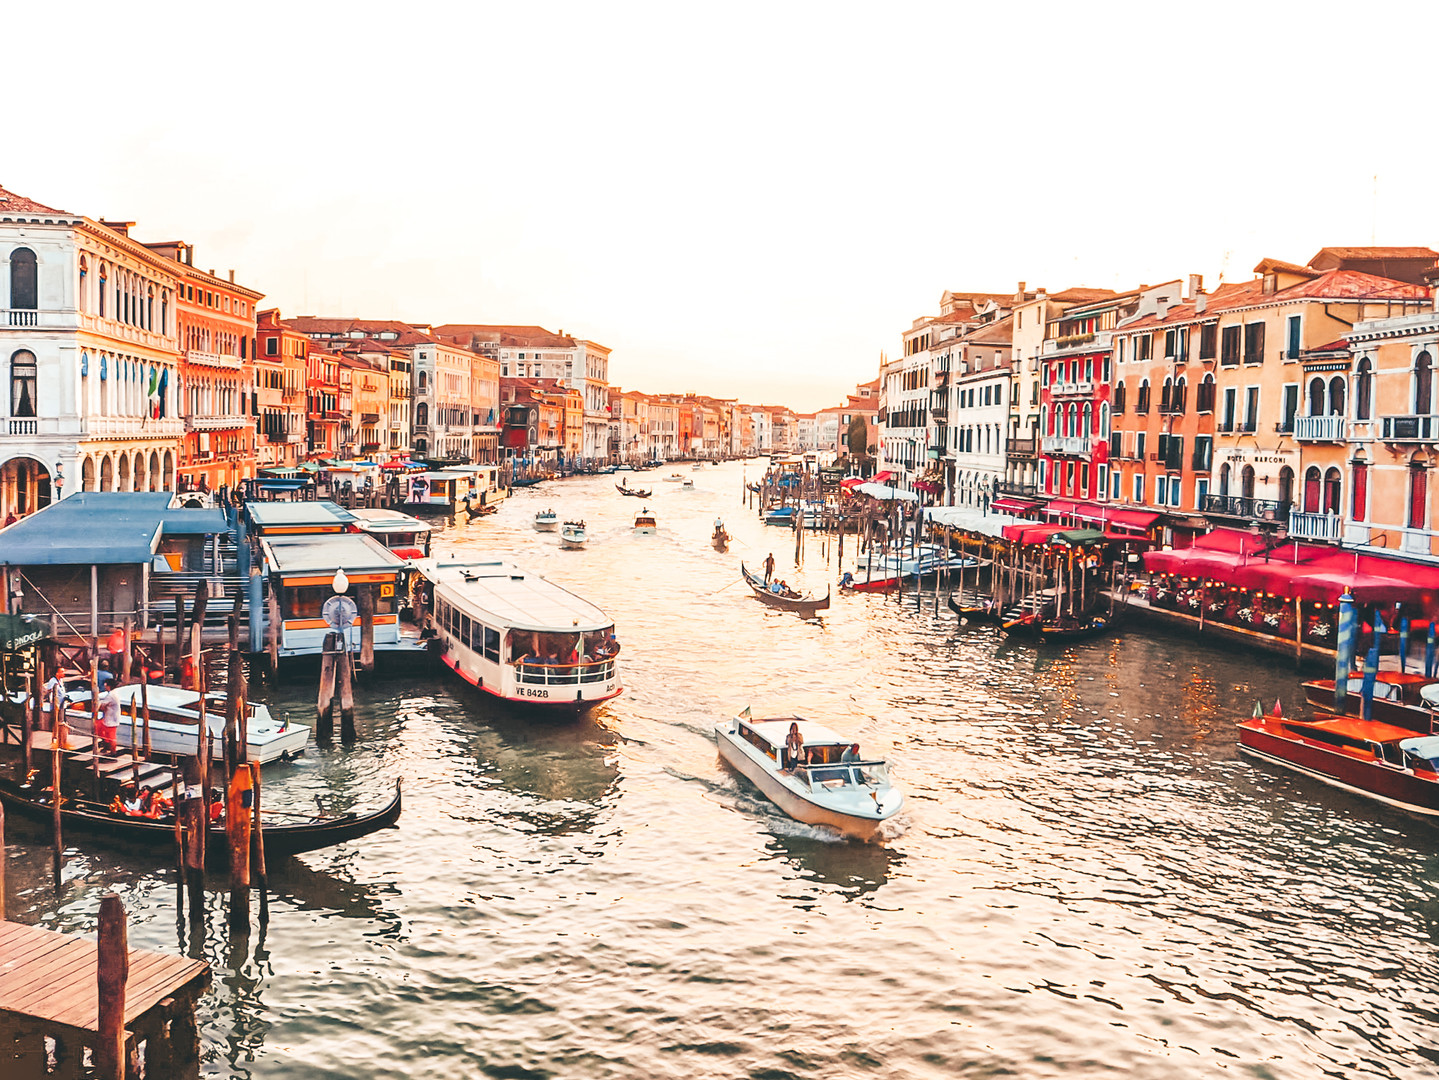 Grand Canal of Venice, Italy #9